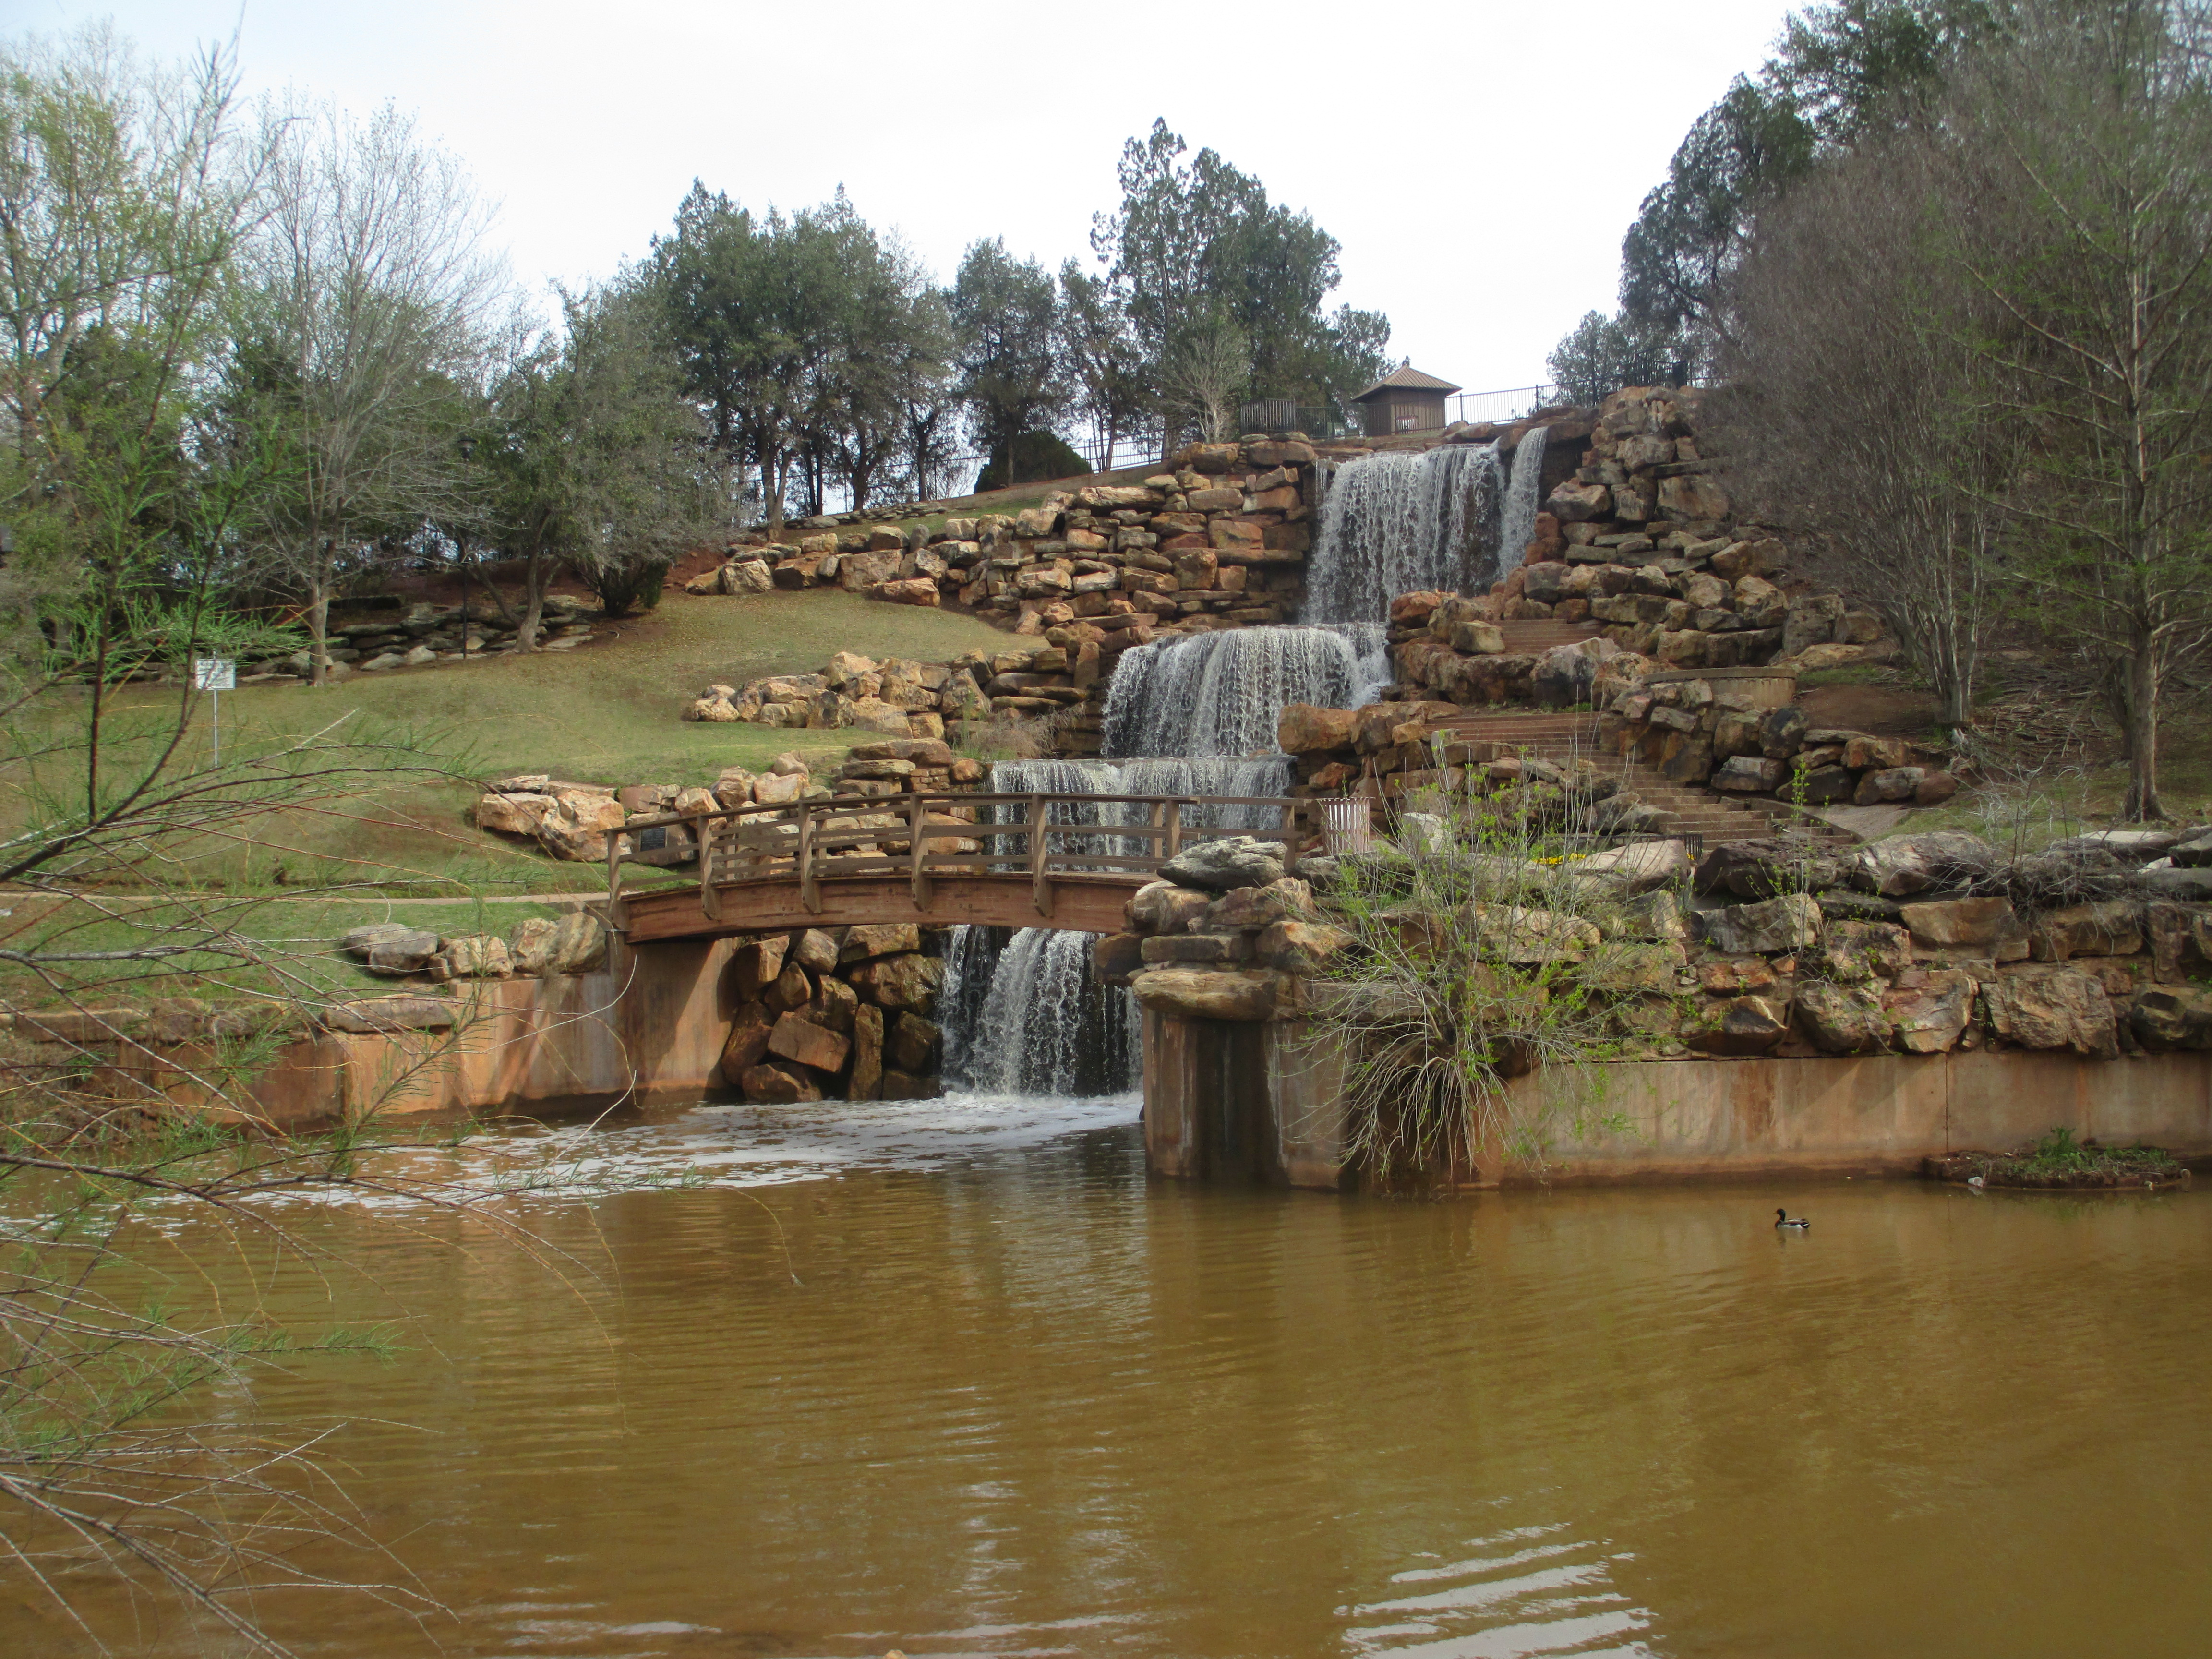 The restored falls of the wichita river in wichita falls texas off interstate 44